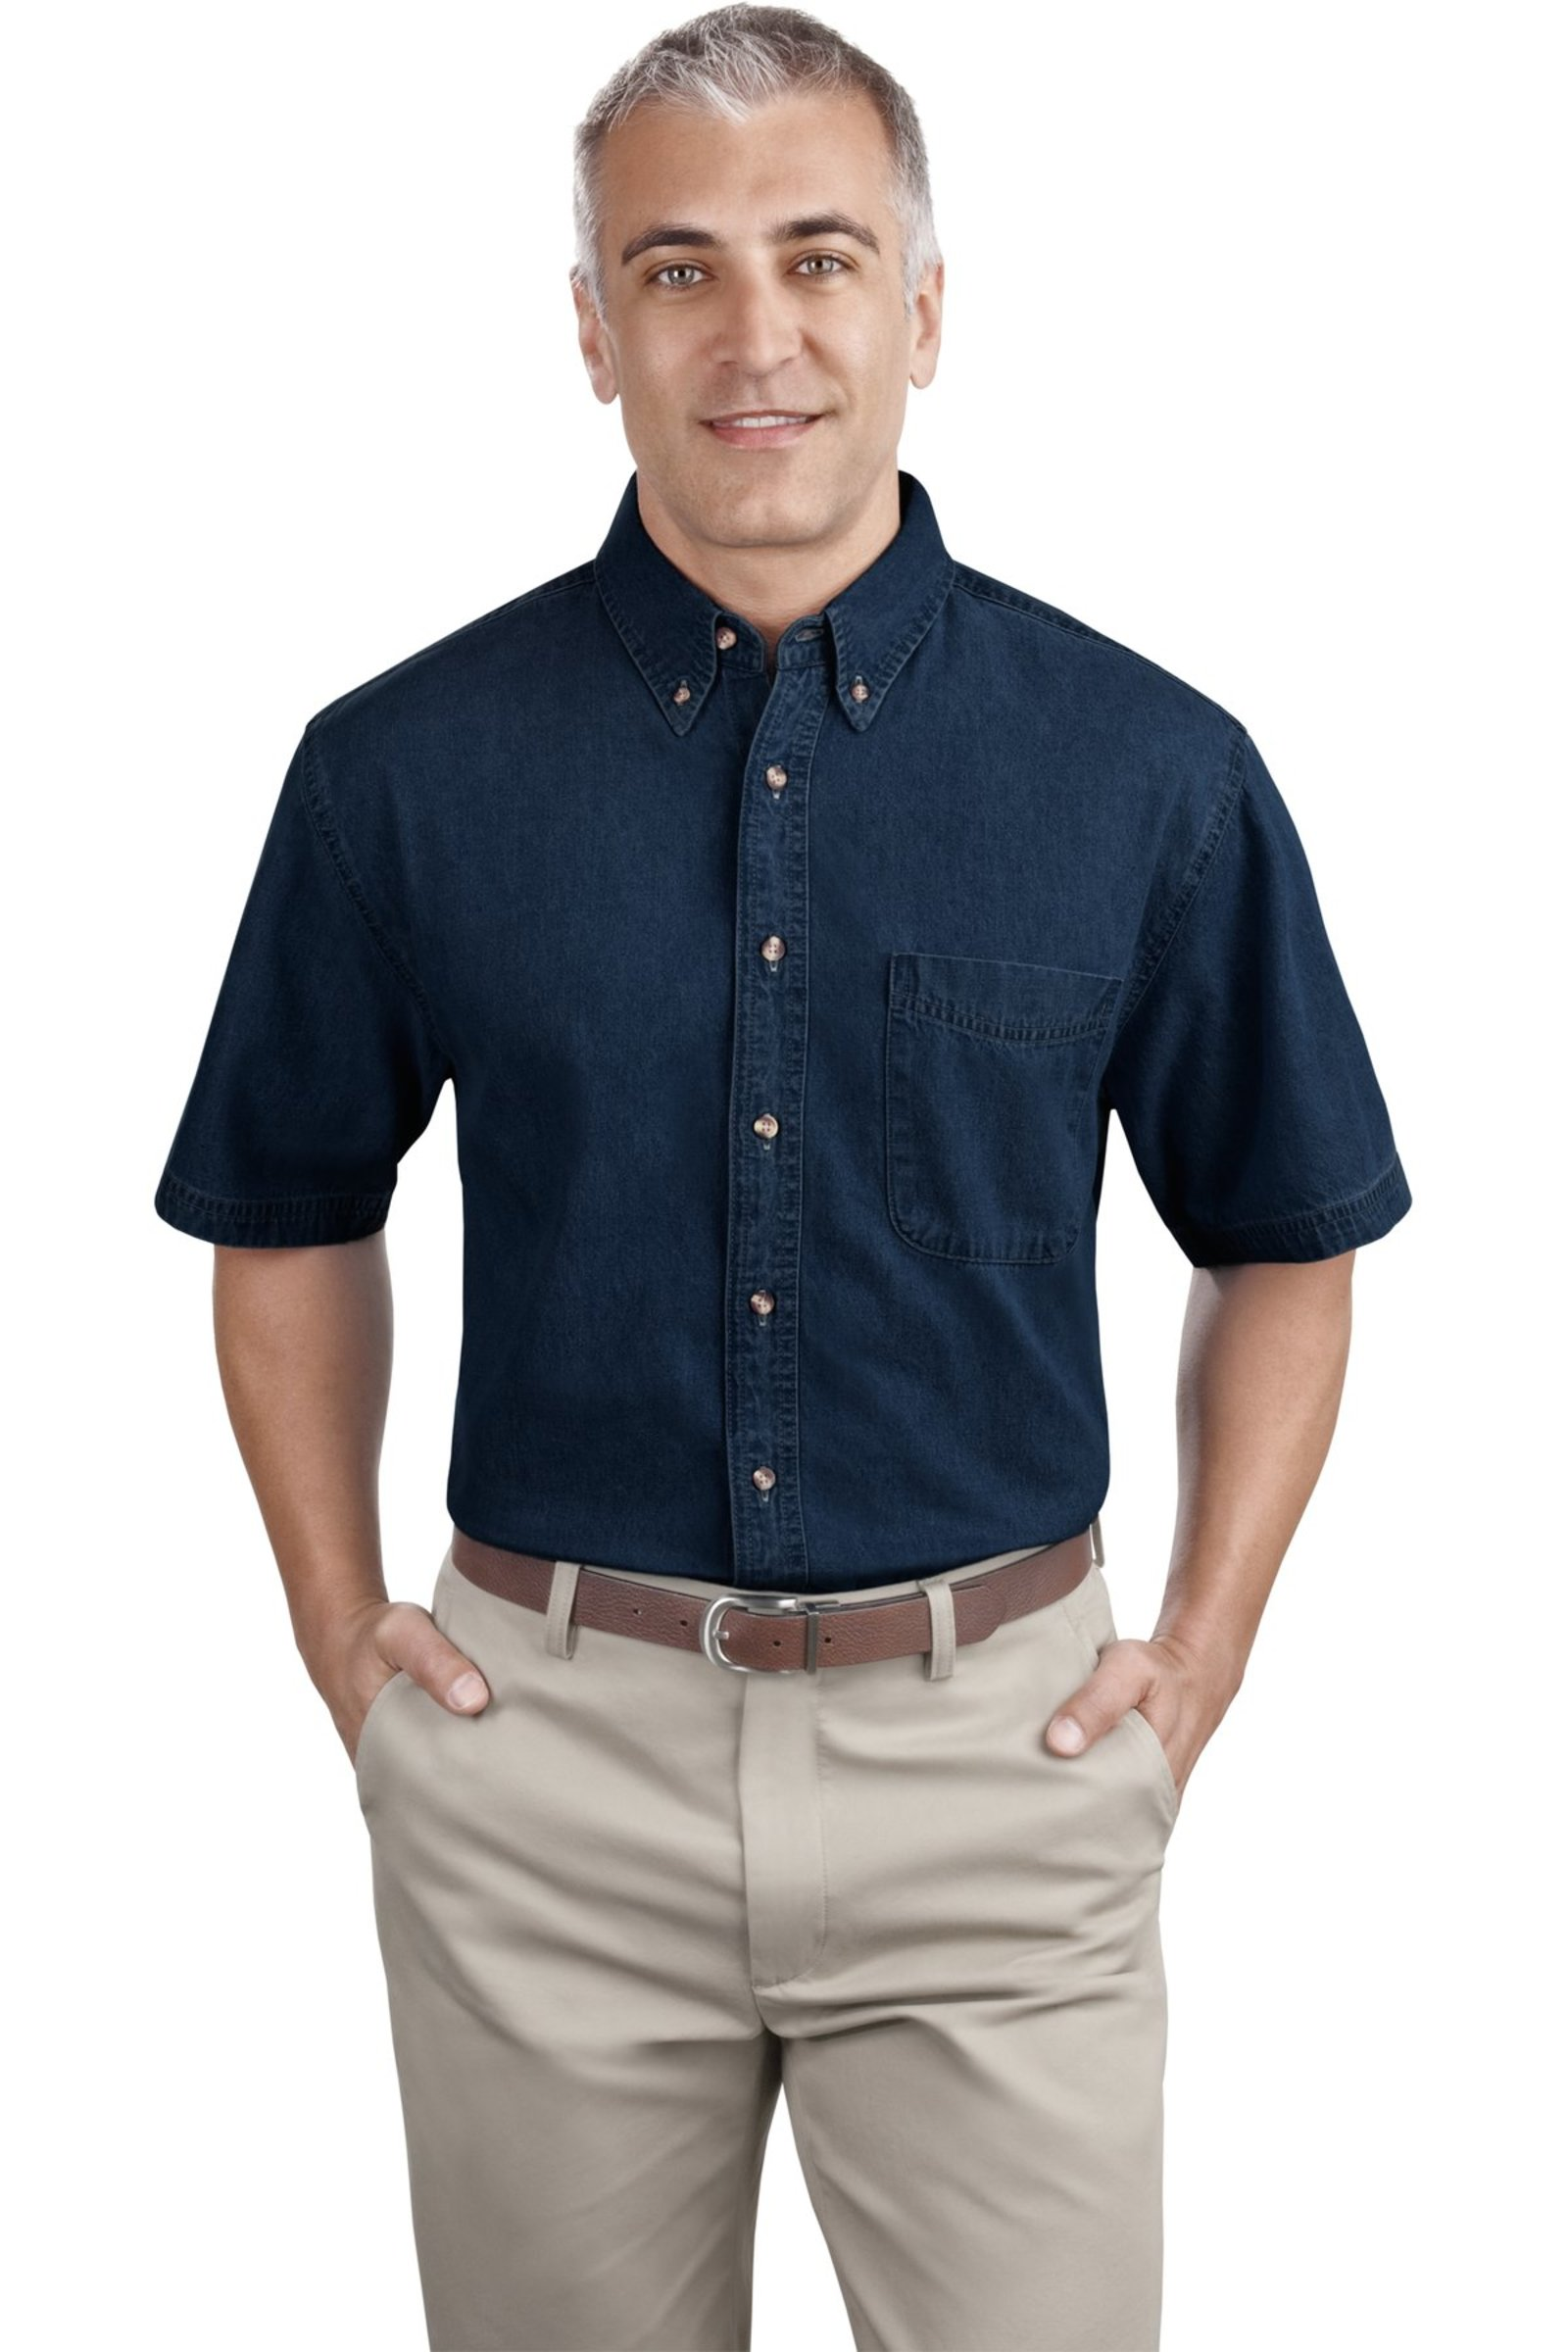 Port & Company Short Sleeve Denim Shirt